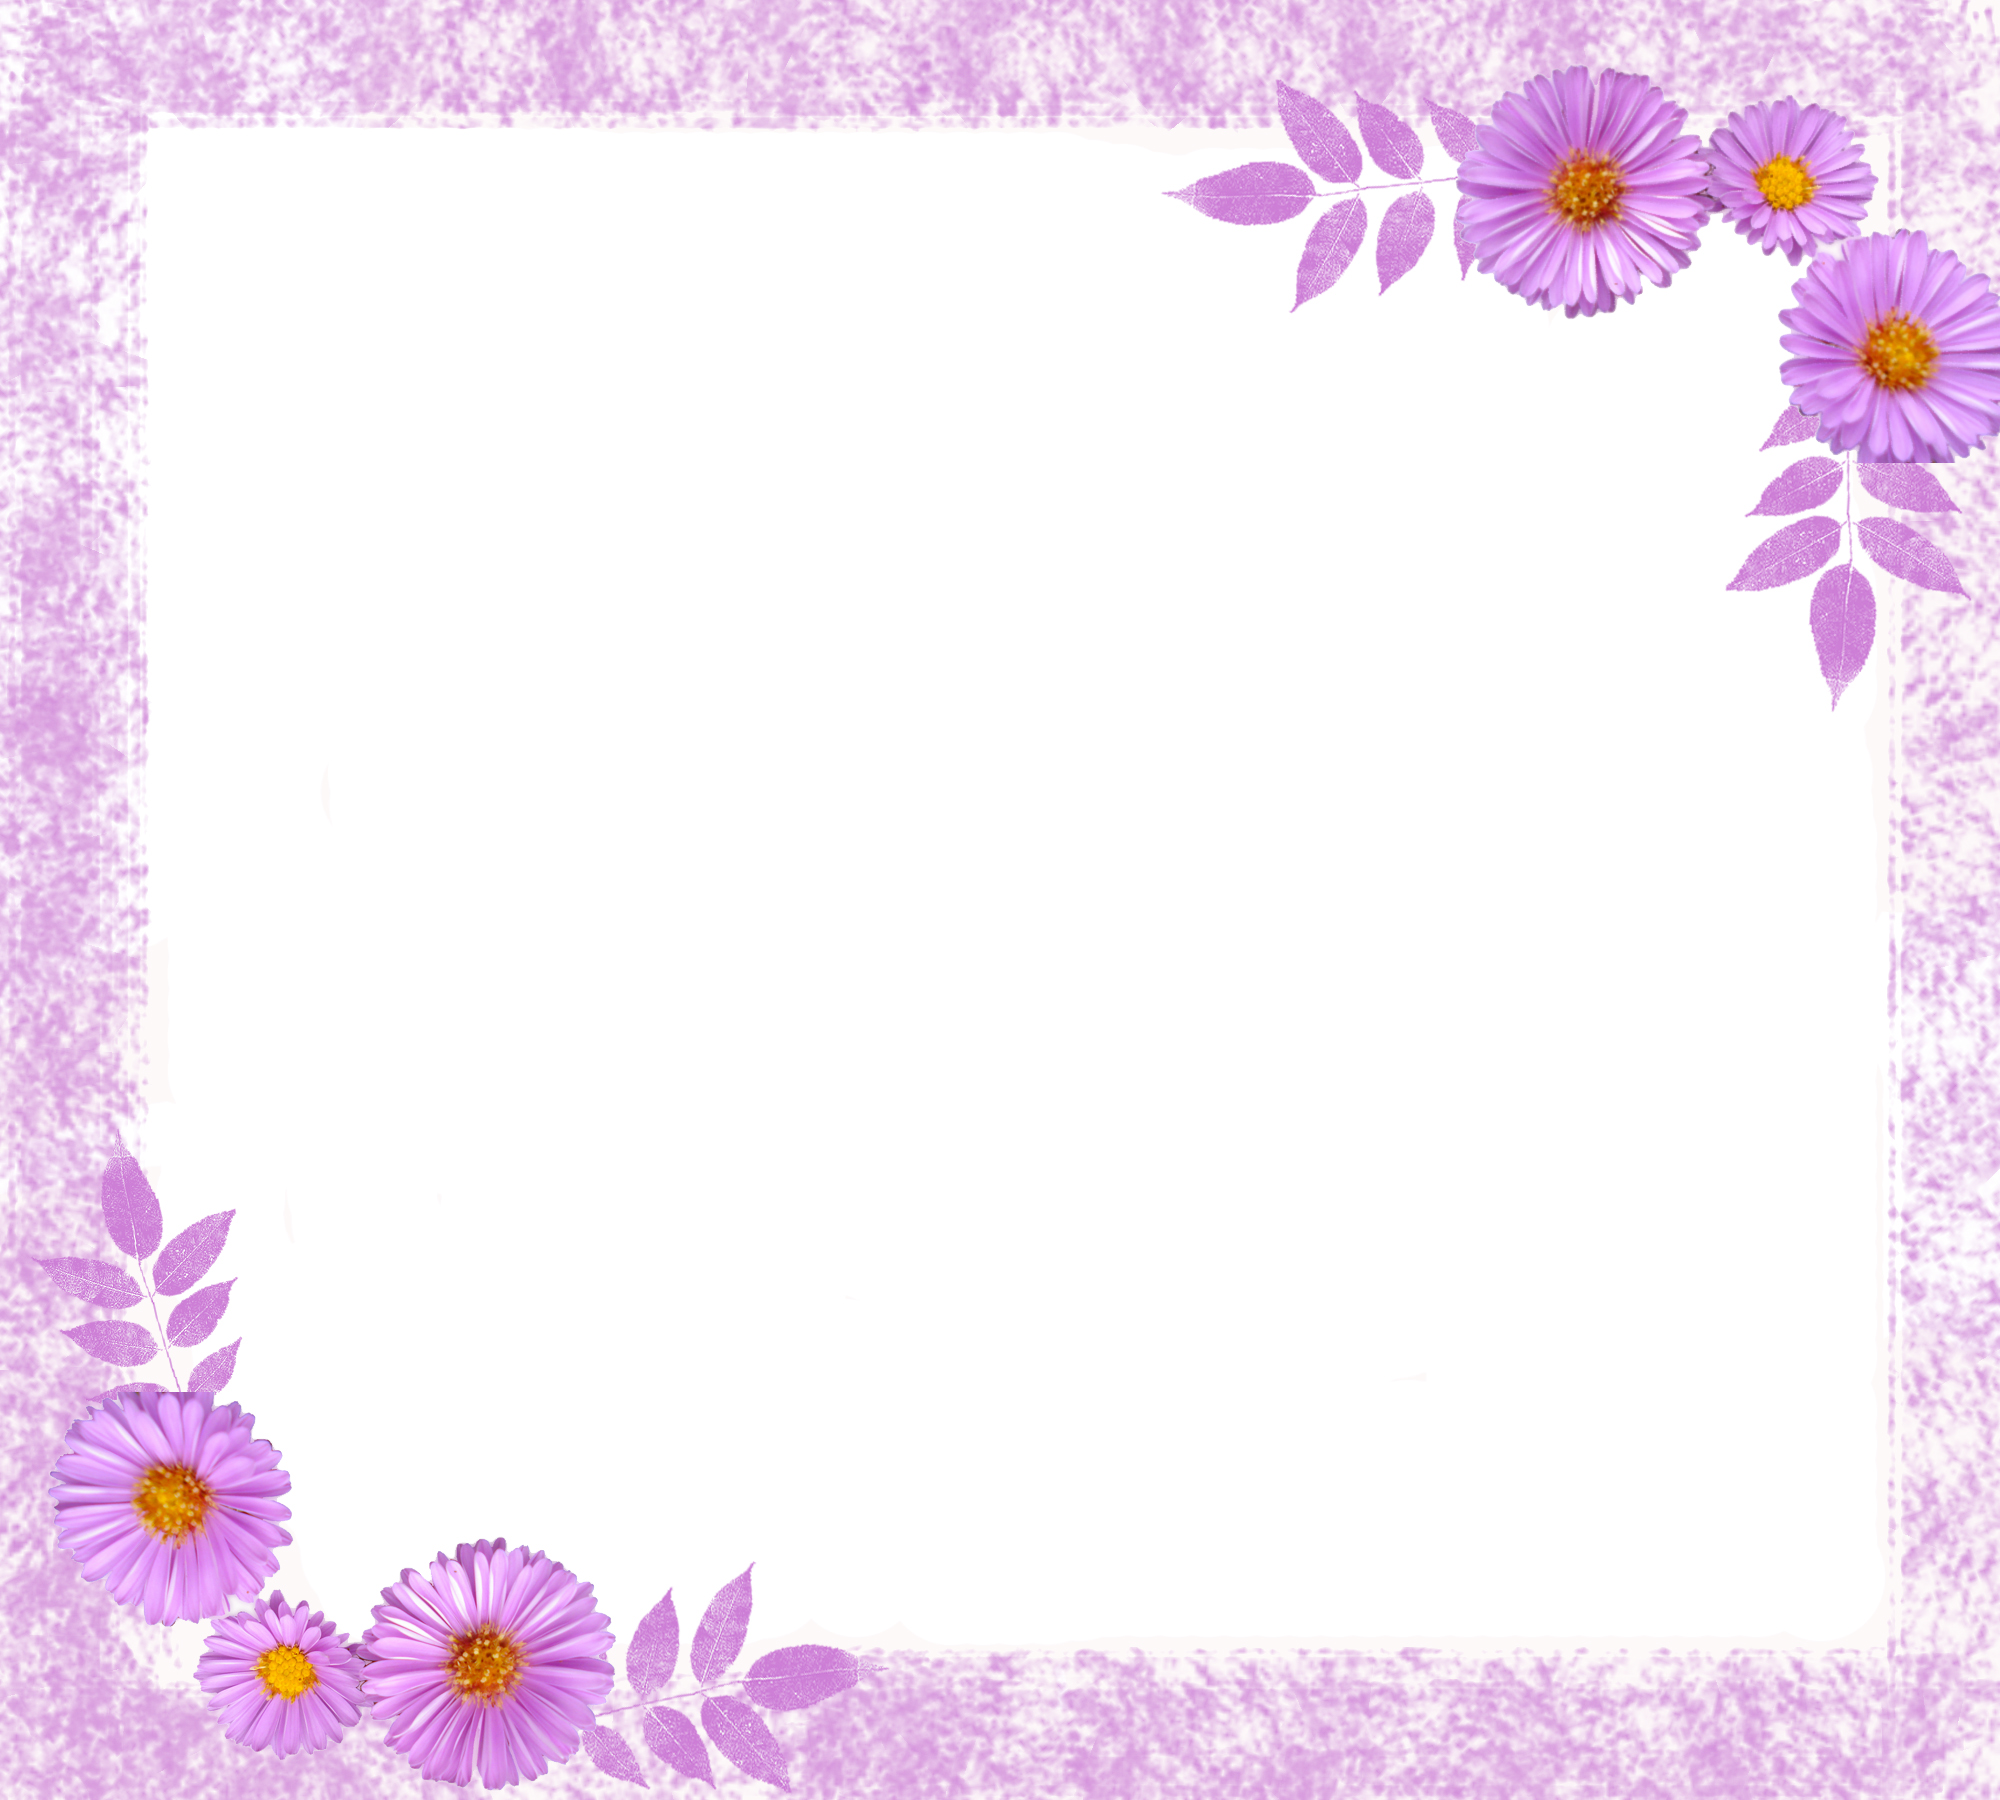 Make a floral photo booth